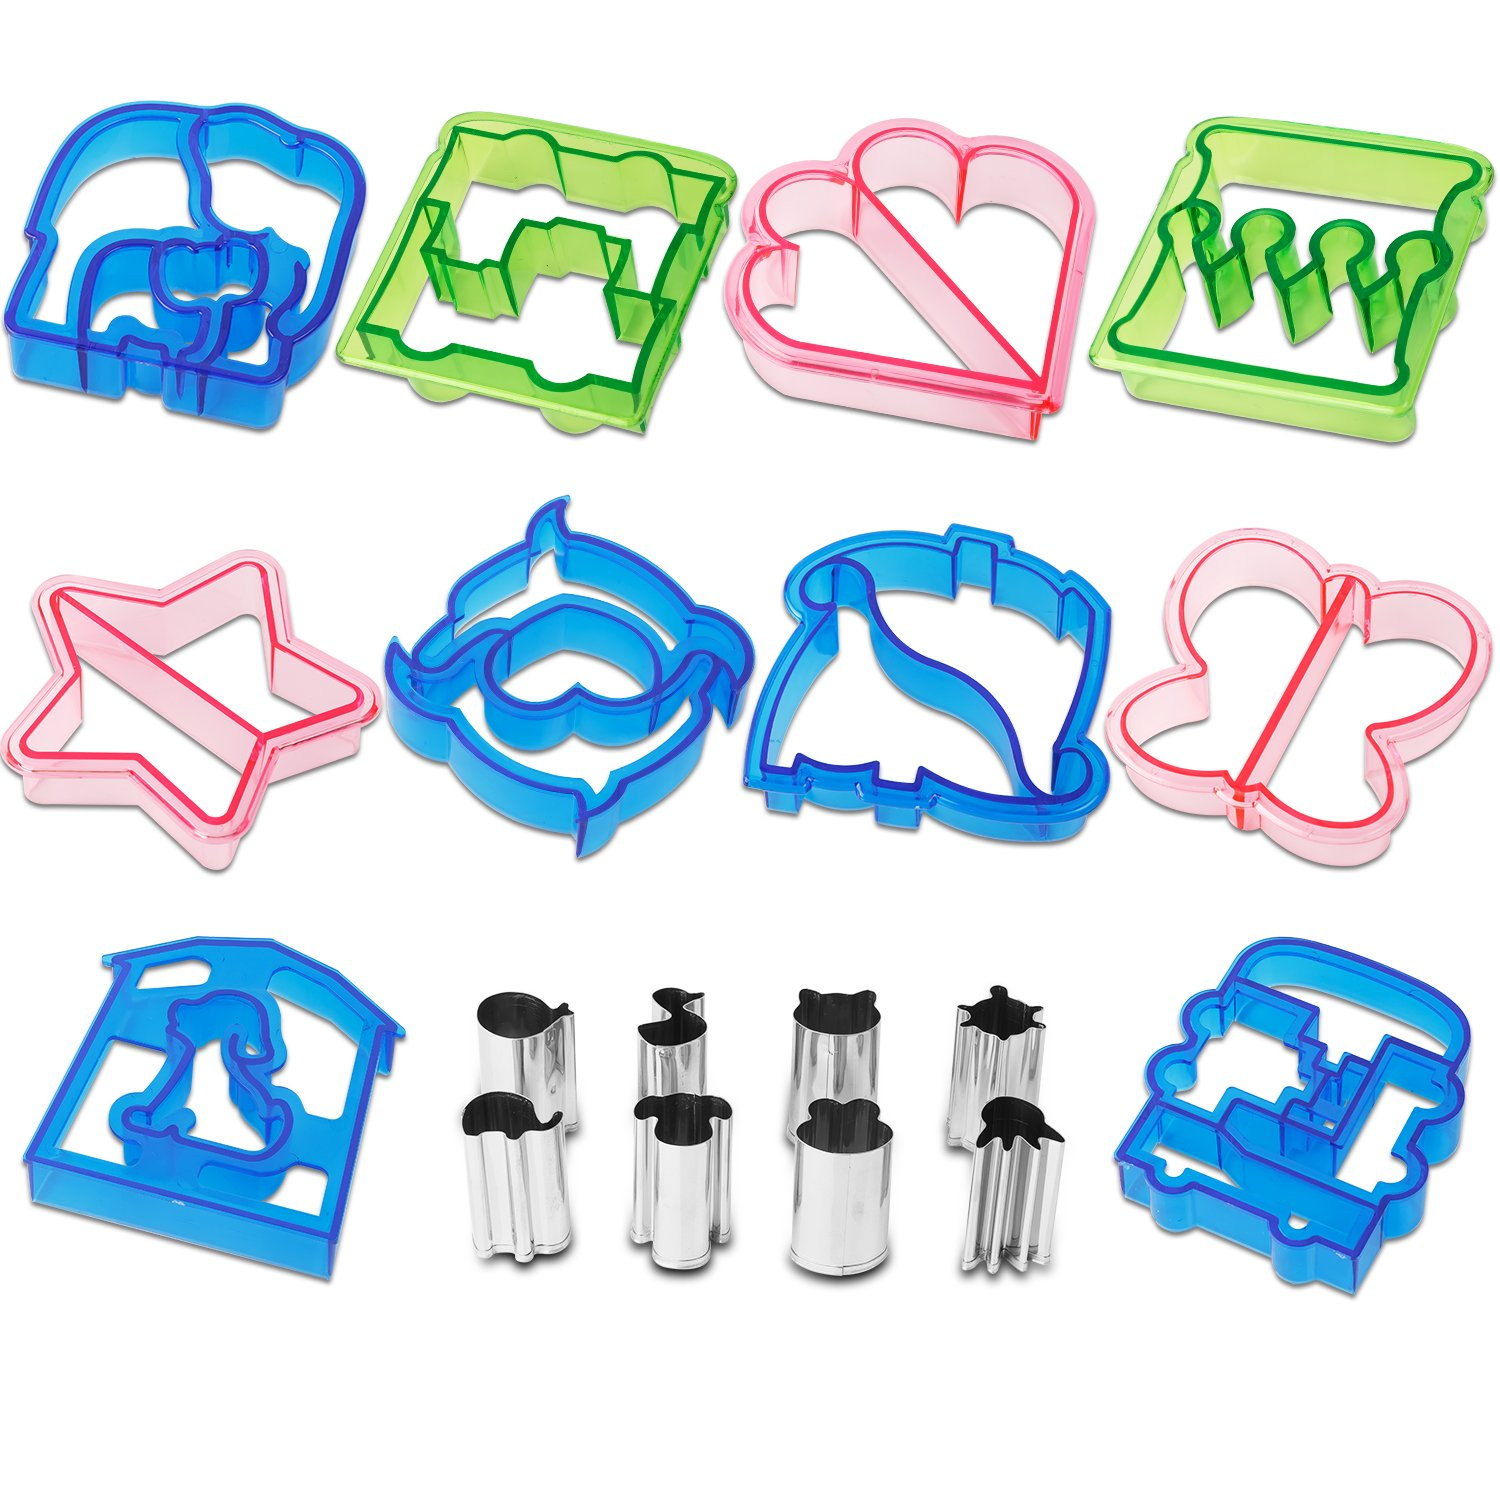 18pcs Sandwich Cutter / Crust Cutters / Bread Cutter Shapes - Come with 8 mini Vegetable Cutters